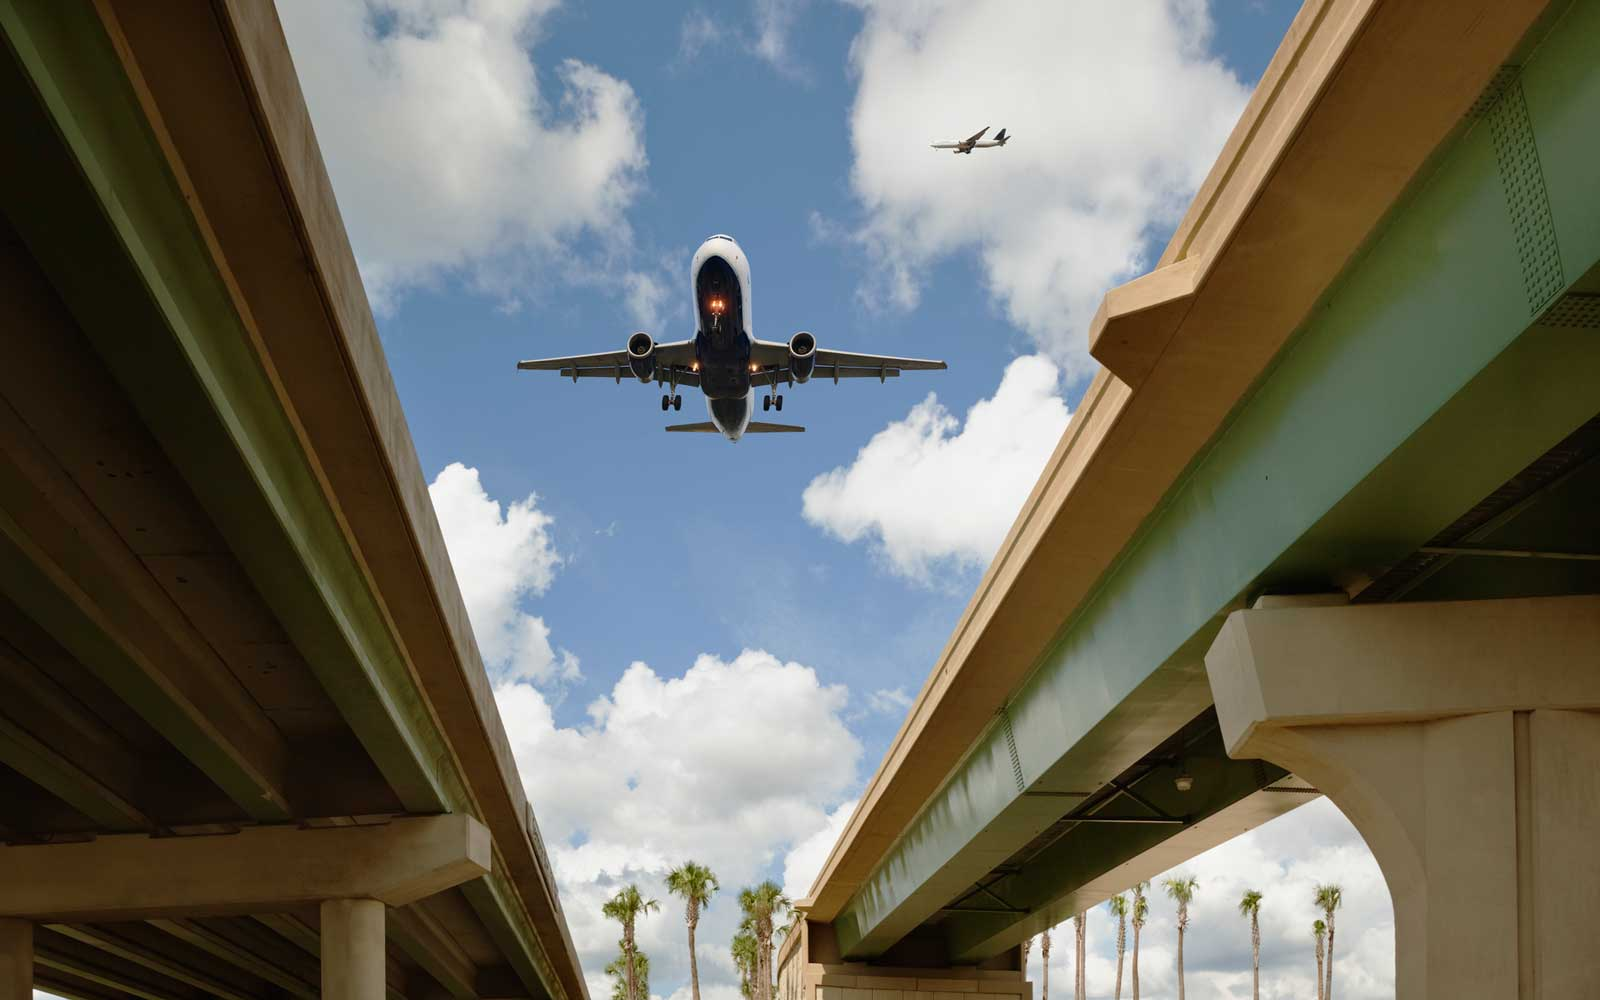 Airplanes flying over highway